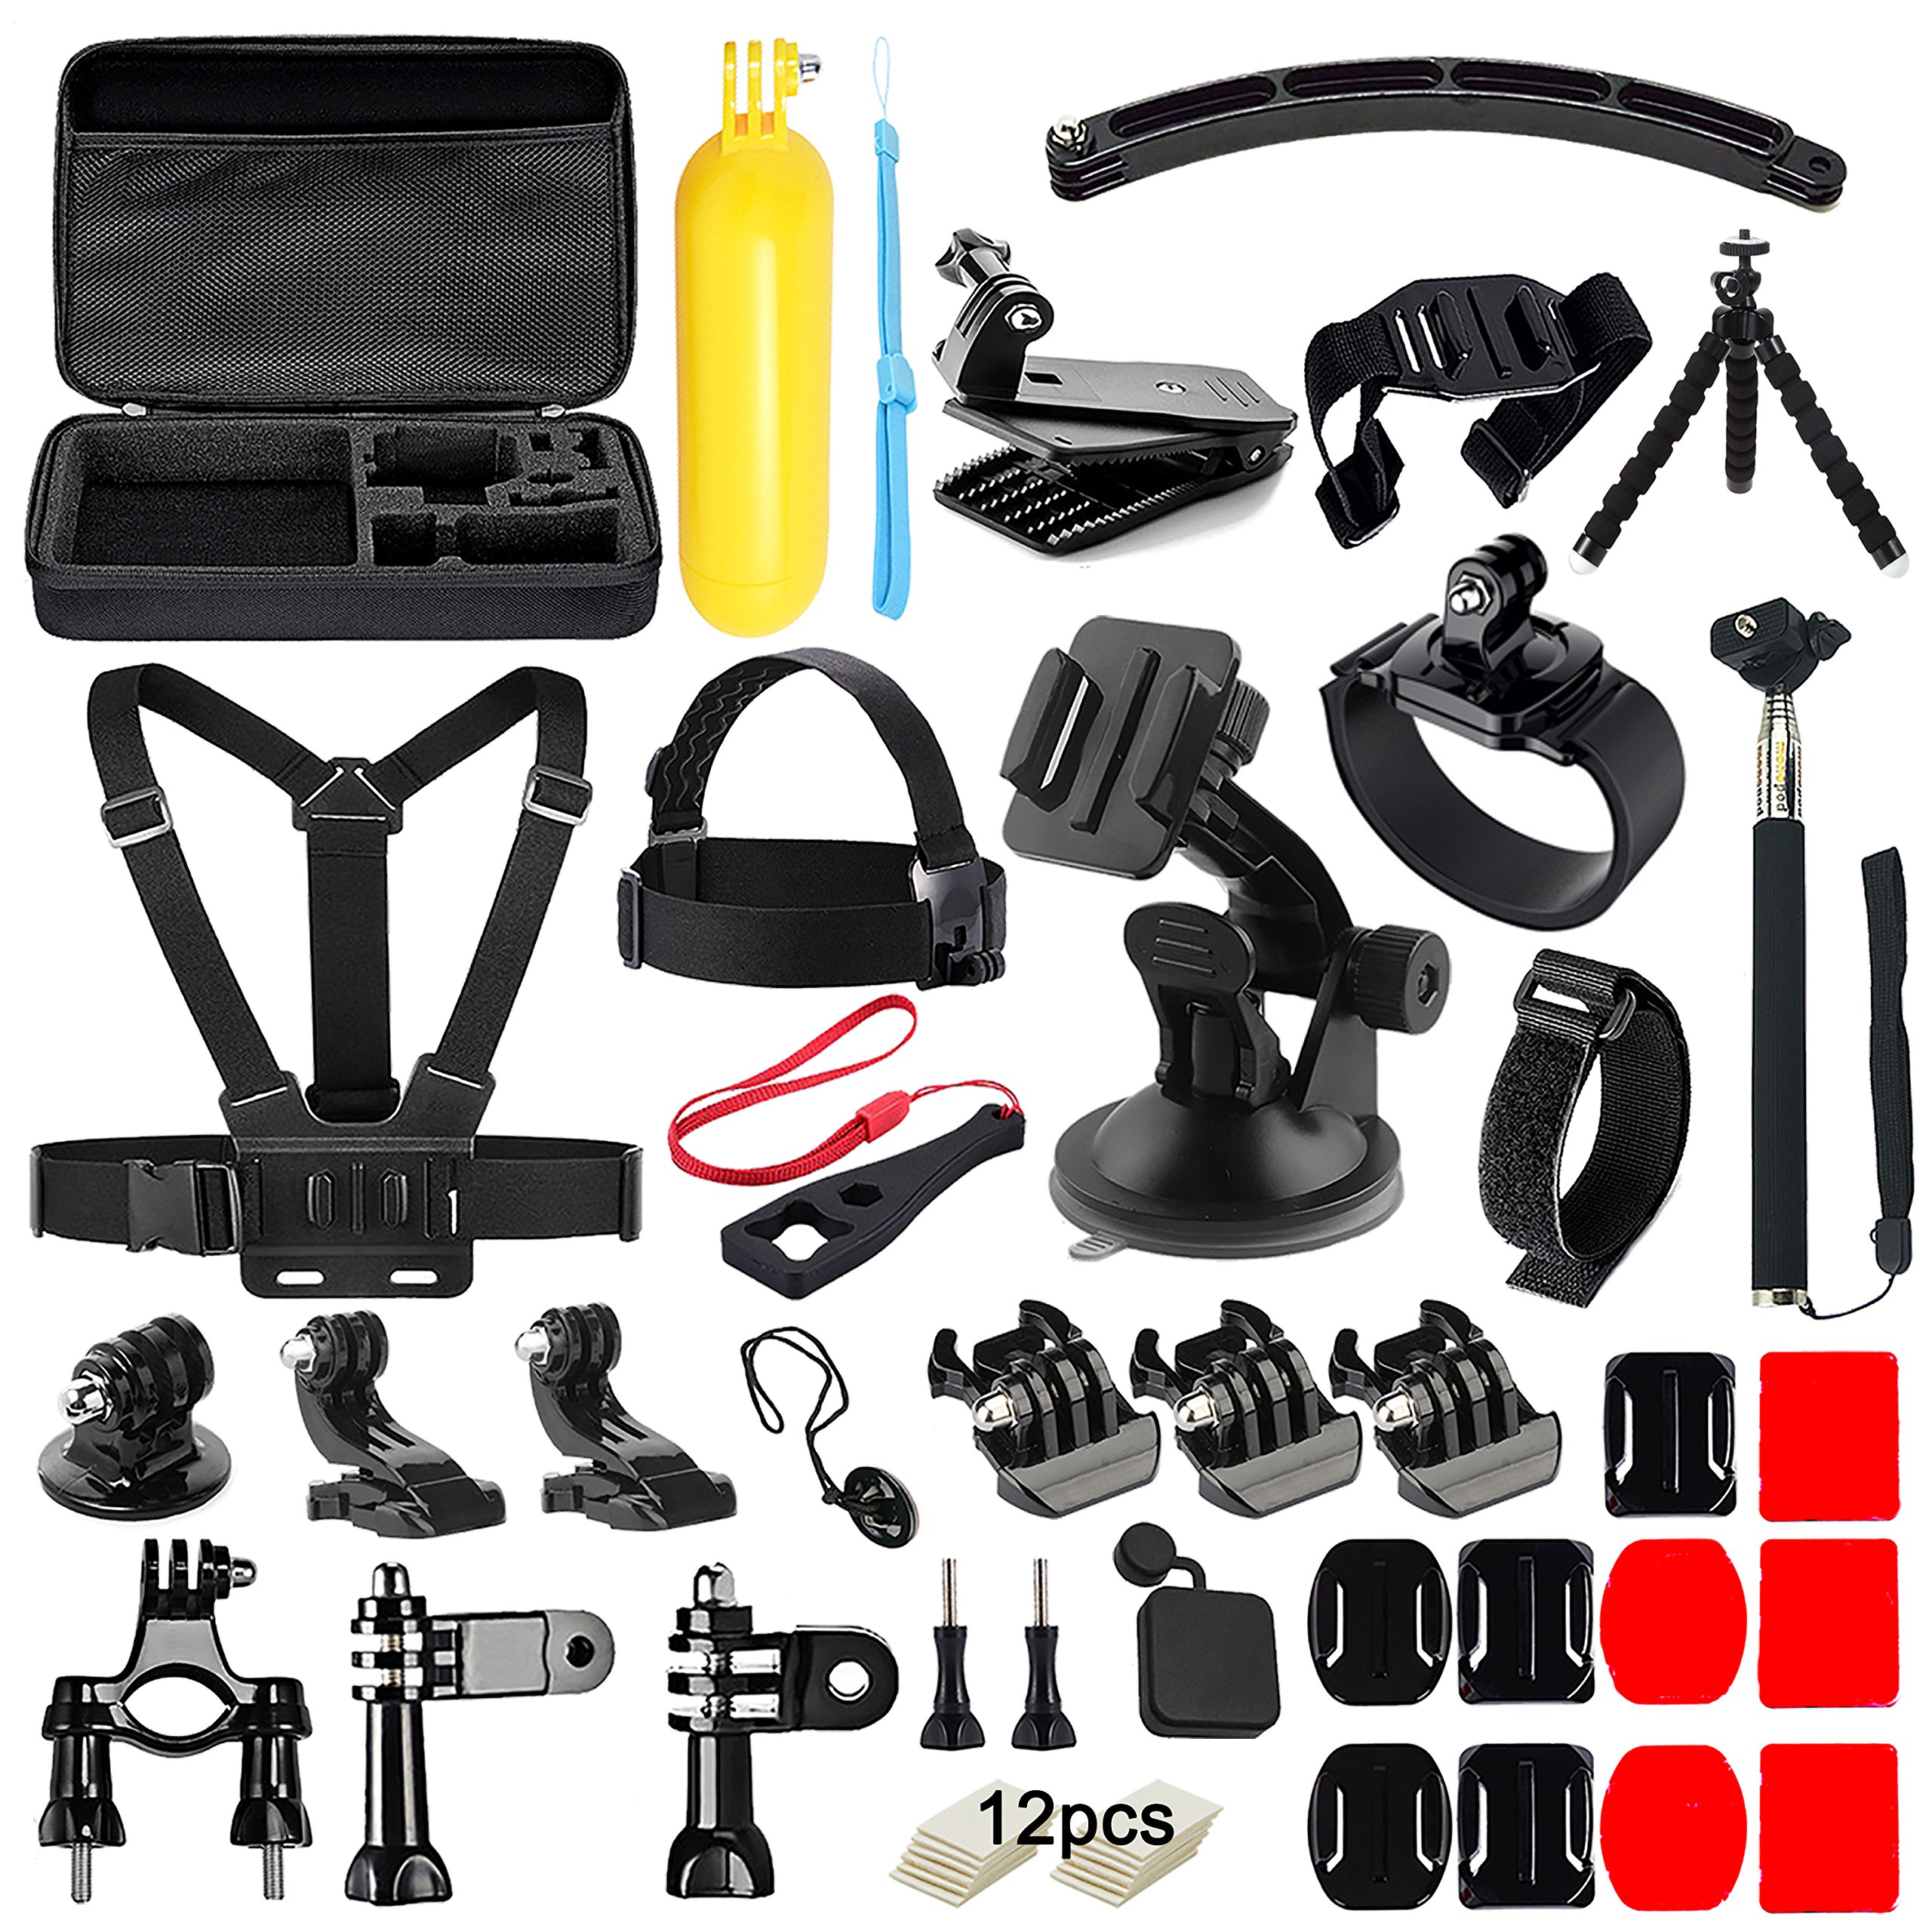 Iextreme 50 in 1 Action Camera Accessories Kit GoPro Hero 2018 GoPro Hero6 5 4 3 Carrying Case/Chest Strap/Octopus Tripod by Ietreme